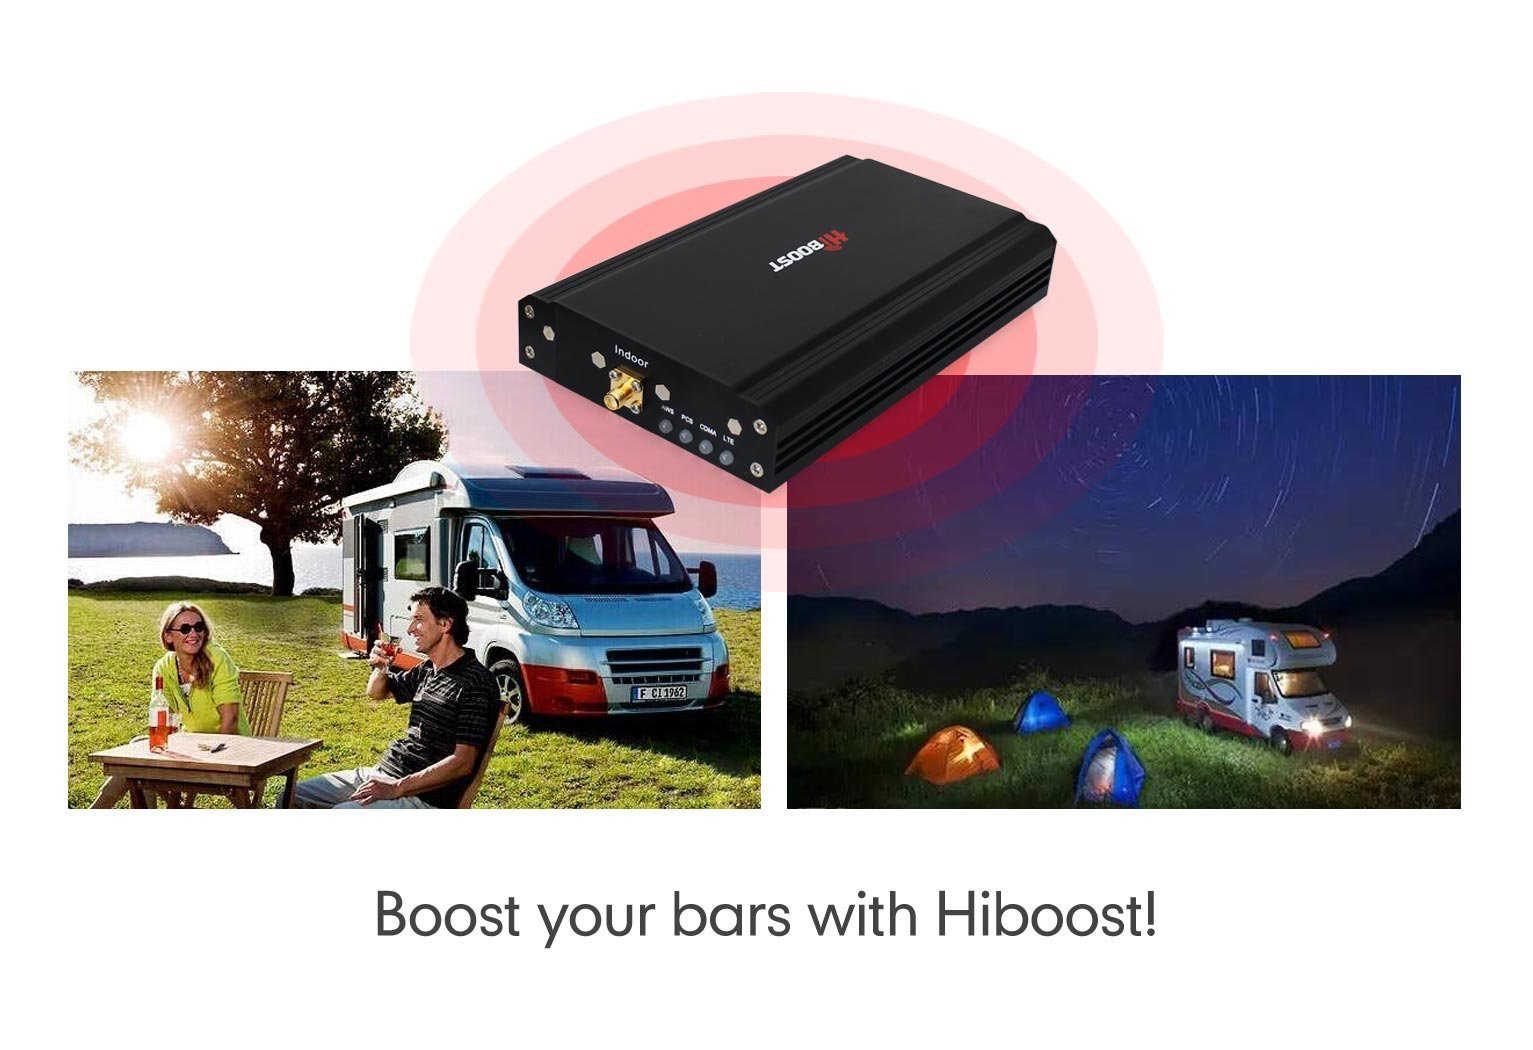 Travel 4G Cell Phone Signal Booster for Car, Truck, SUV, RV, & More - HiBoost Mobile Signal Boosters by HiBoost (Image #6)